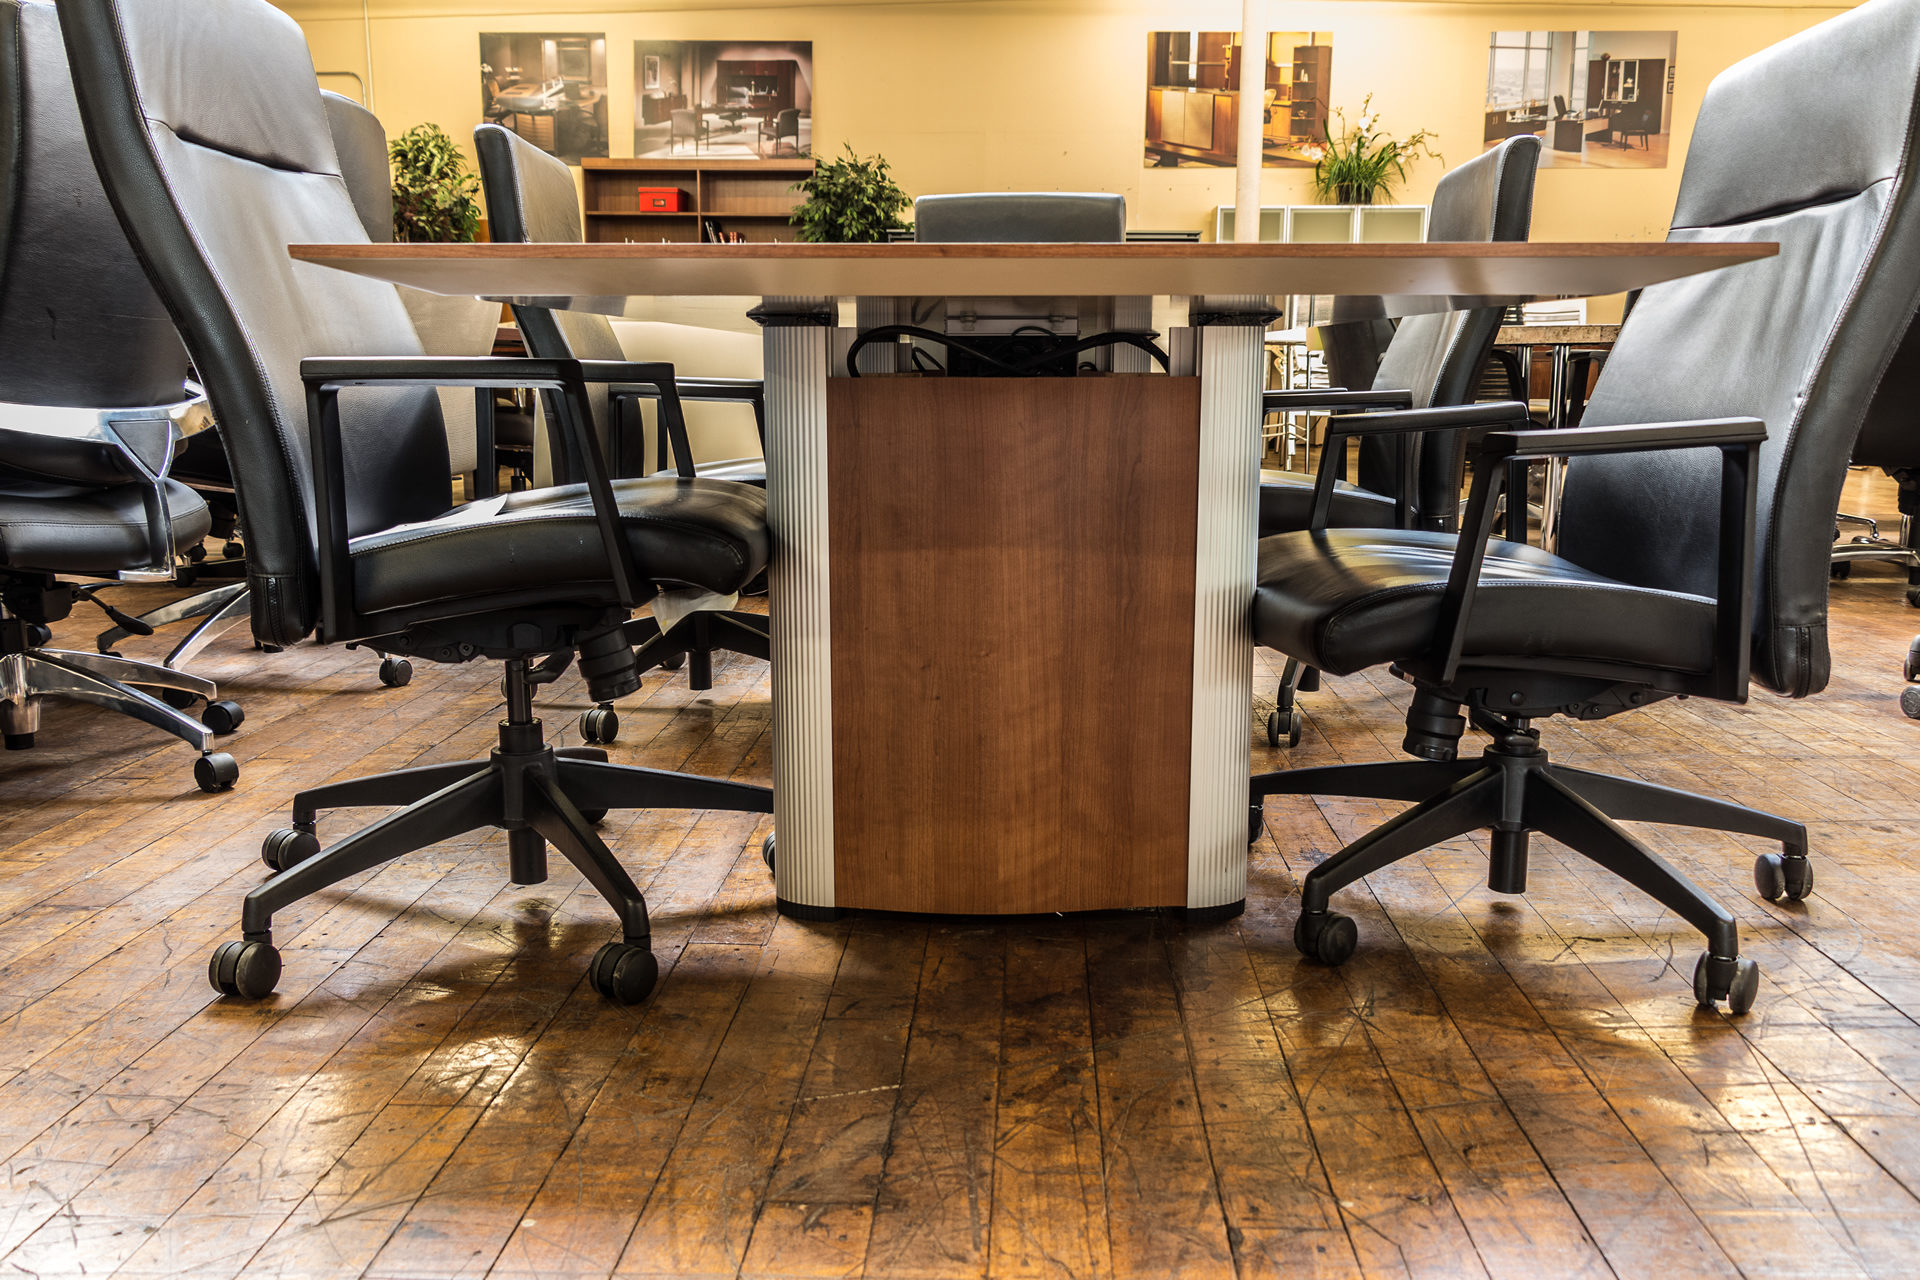 peartreeofficefurniture_peartreeofficefurniture_peartreeofficefurniture_nienkamper-vox-8-x-3-5-cherry-laminate-tapered-edge-conference-table-3.jpg